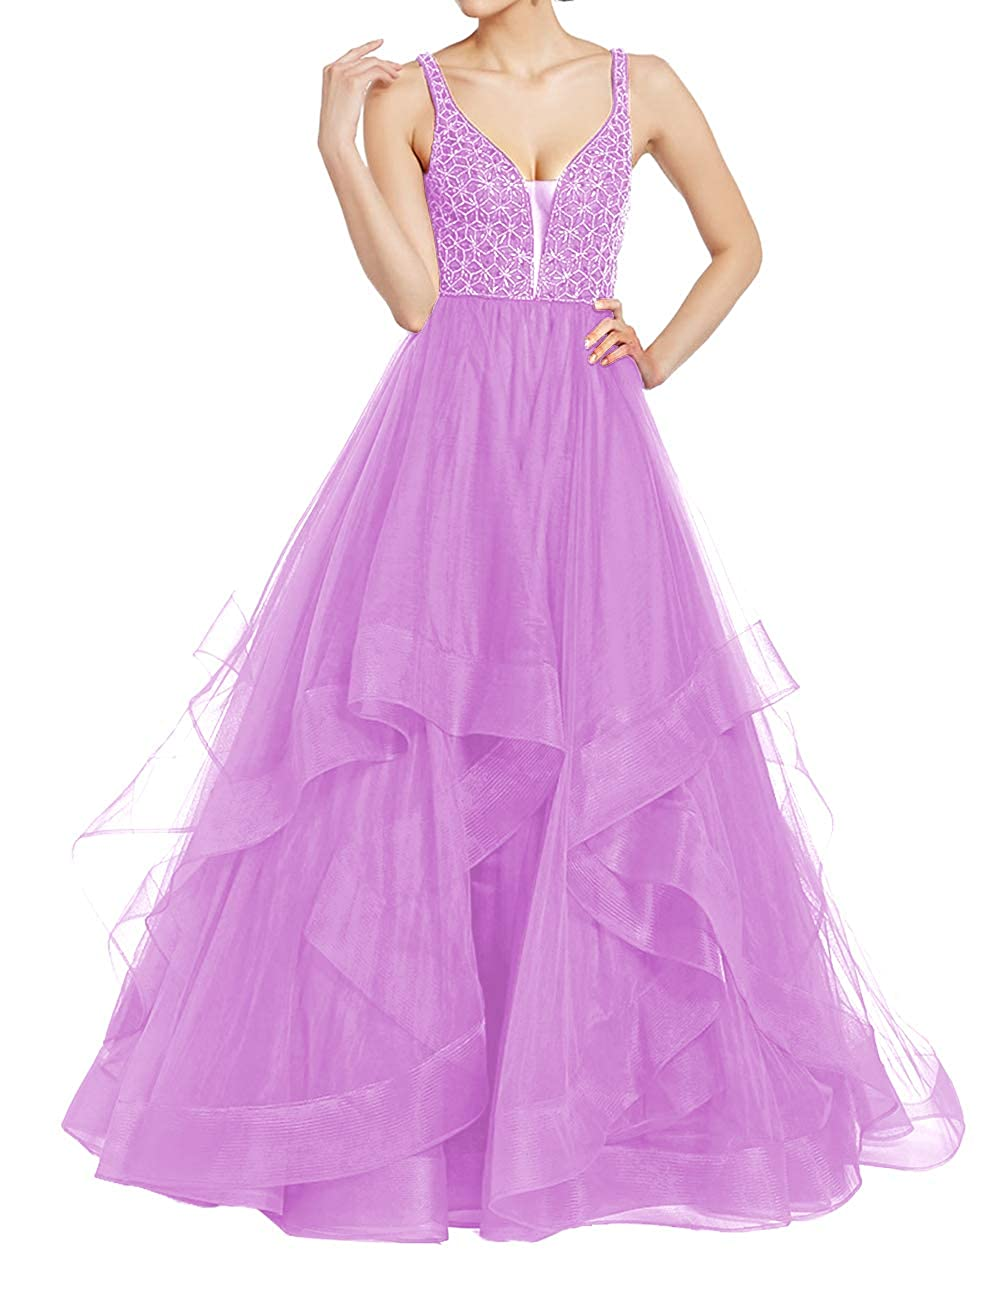 purplec Uther Elegant Tulle Evening Ball Gowns Long Beaded Formal Prom Party Dresses